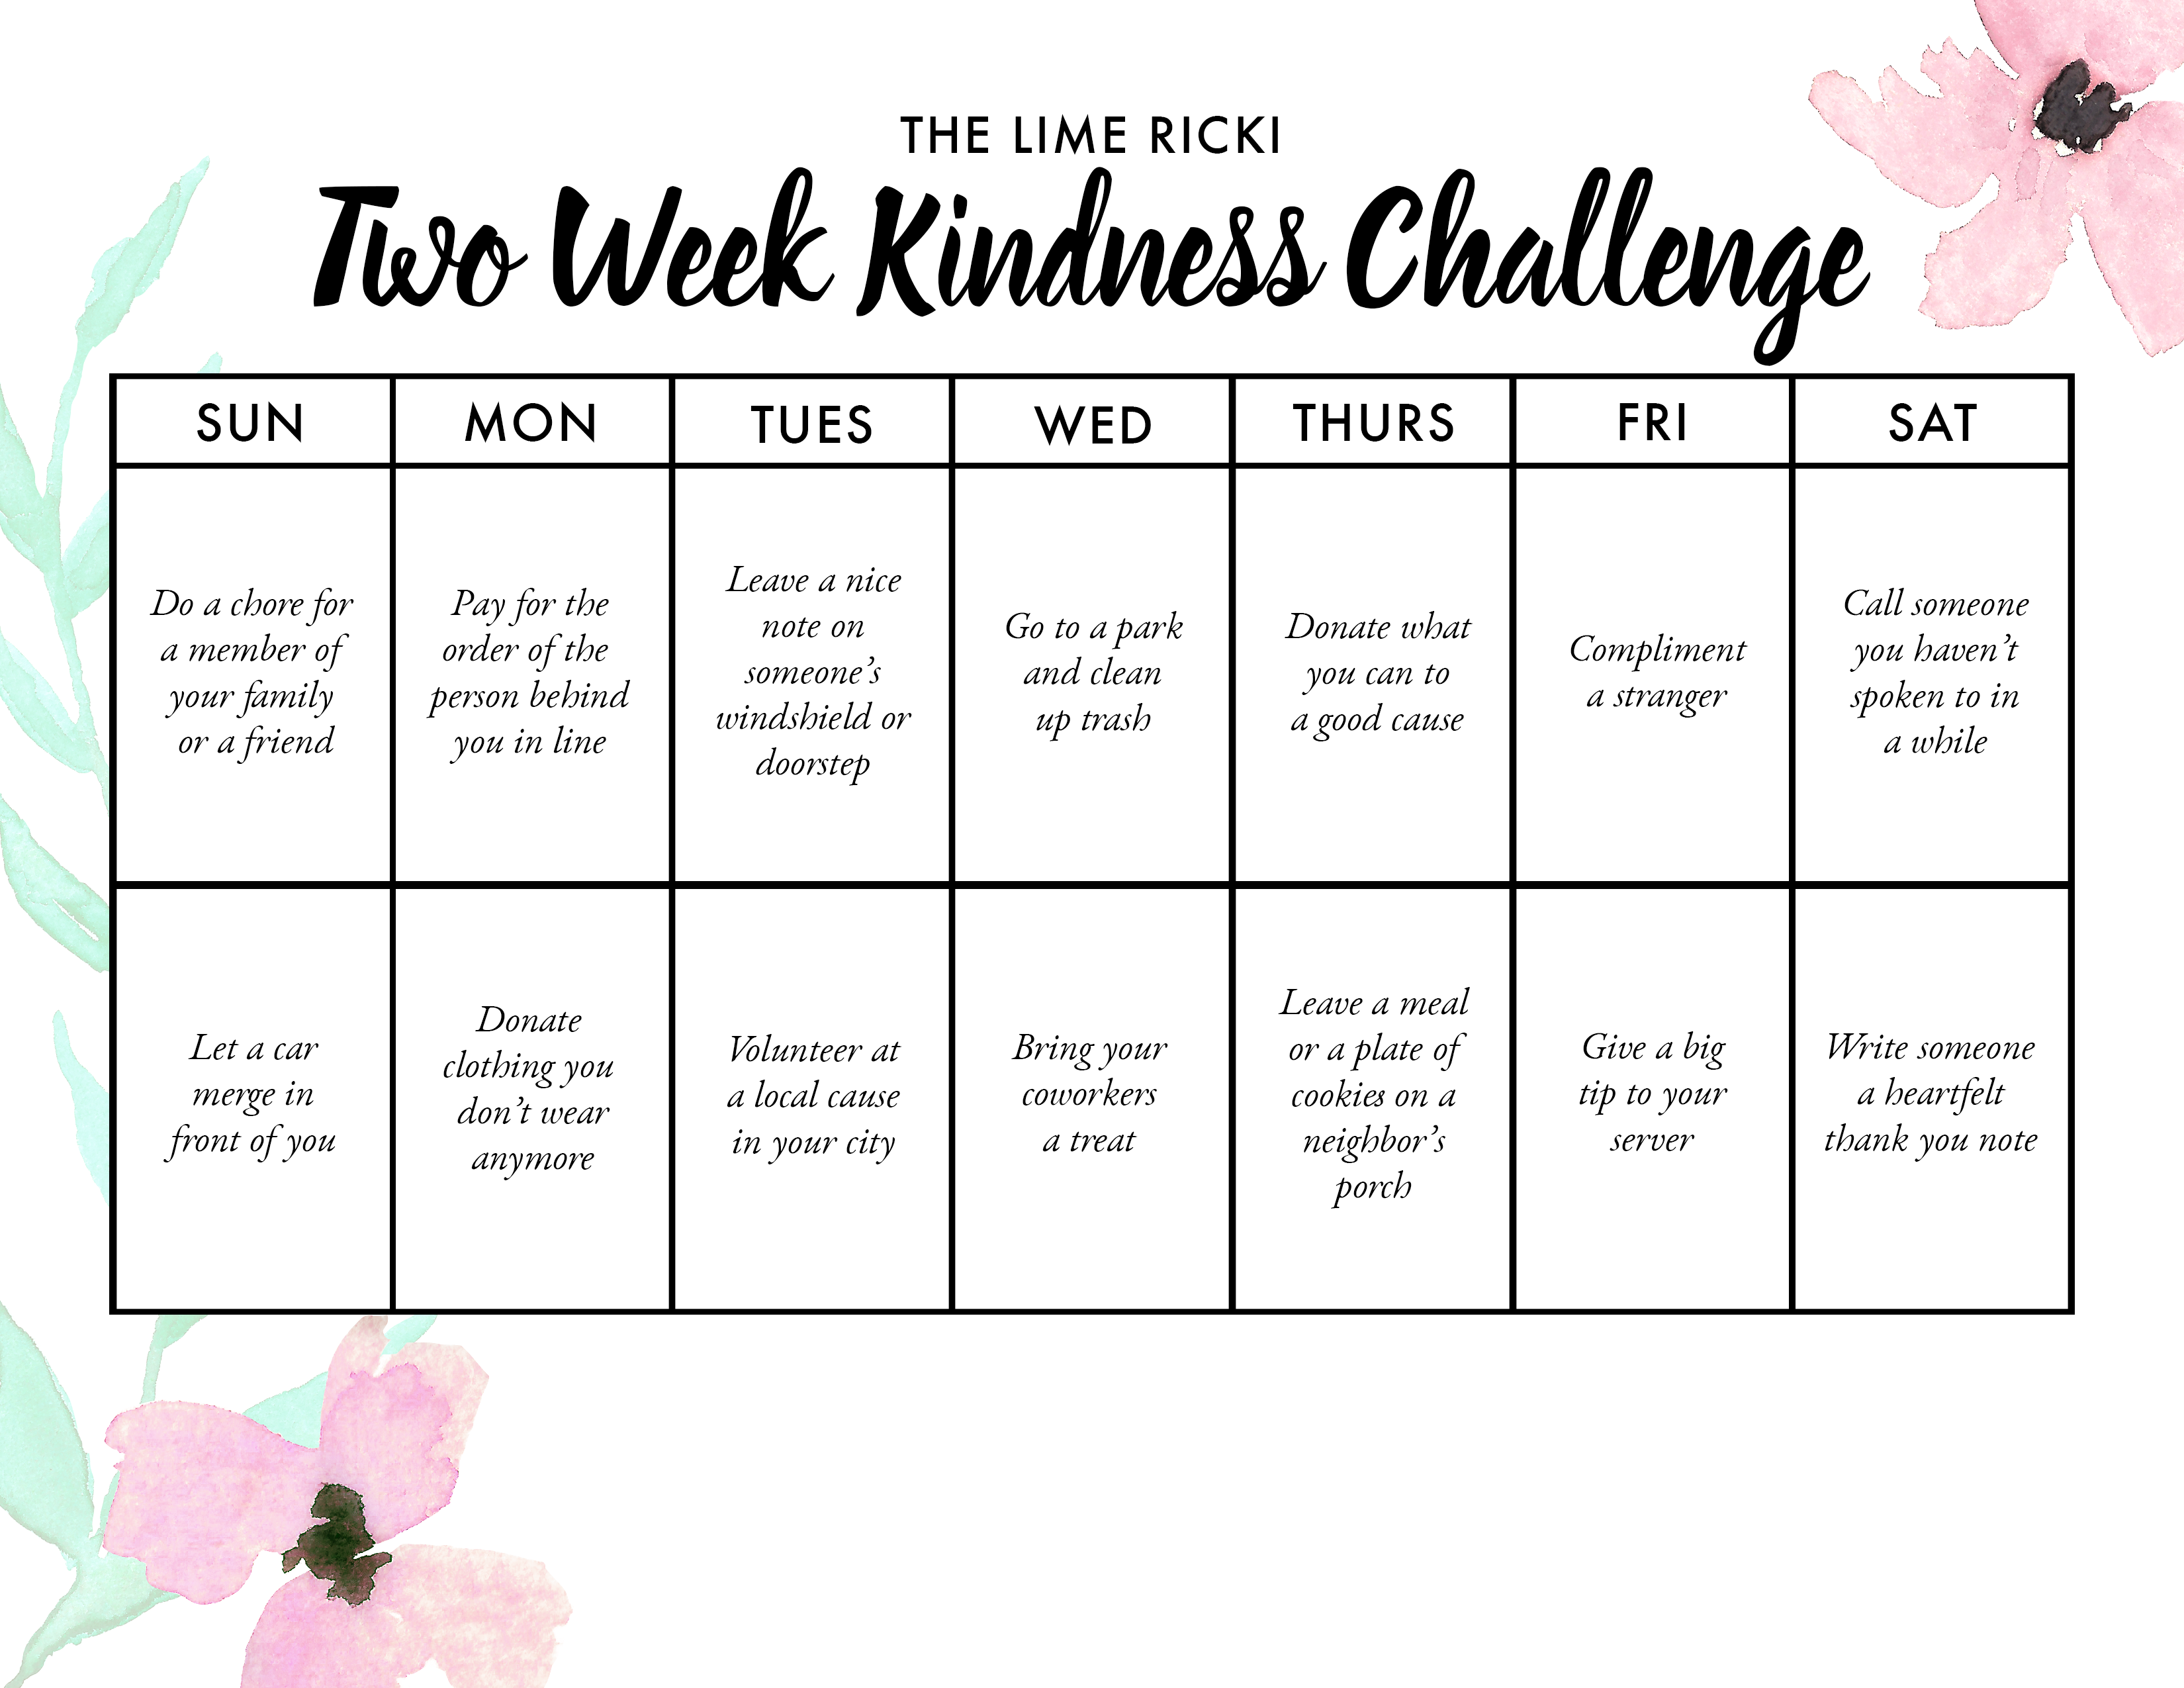 Join in on our two week kindness challenge! | Lime Ricki Swimwear | Kindness calendar